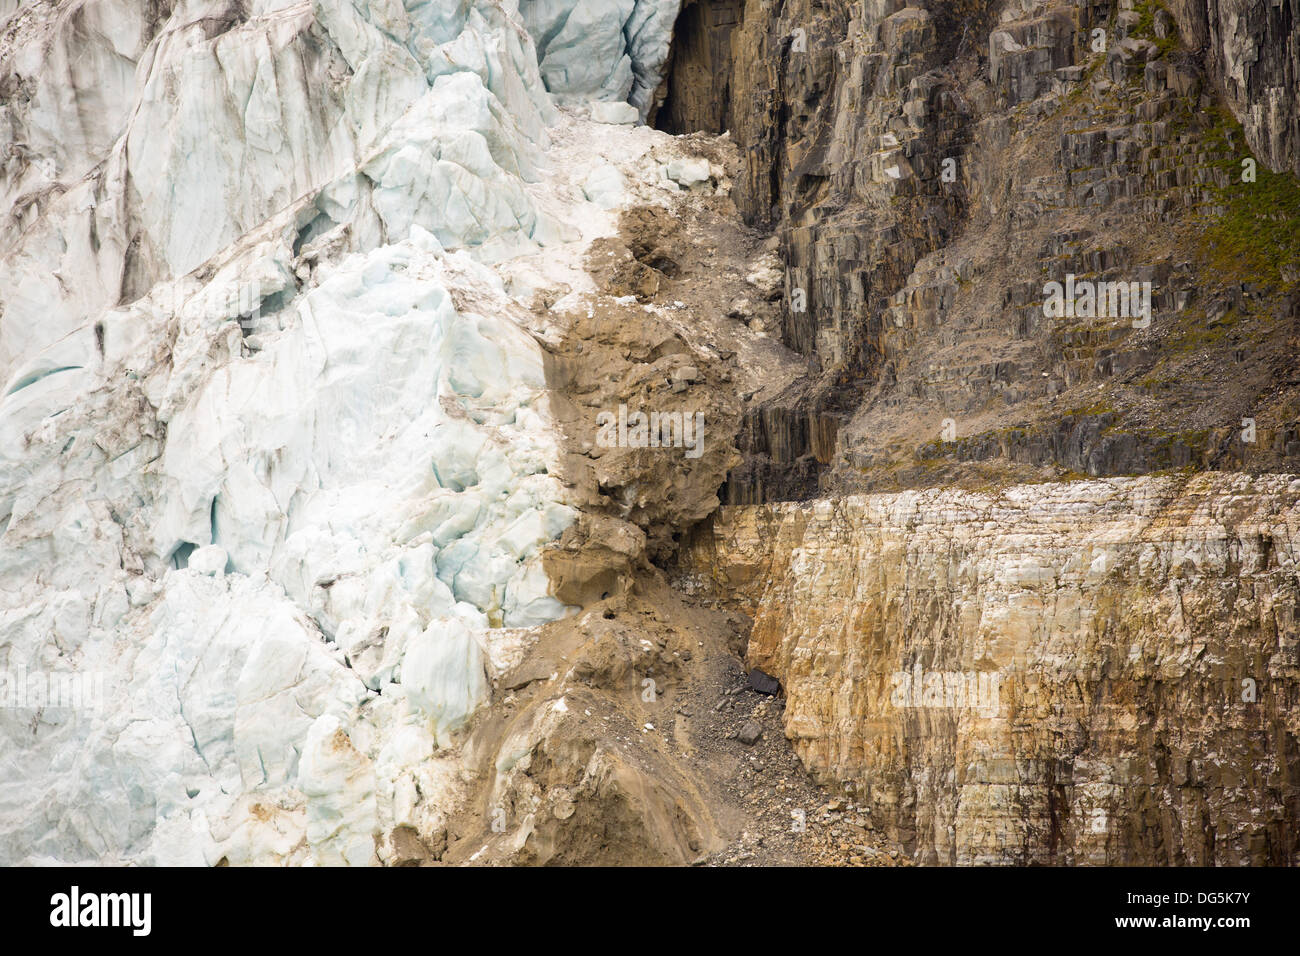 A glacier at Alkefjellet in northern Svalbard. At the side of the glacier is an unconformity where basalt rock has intruded - Stock Image